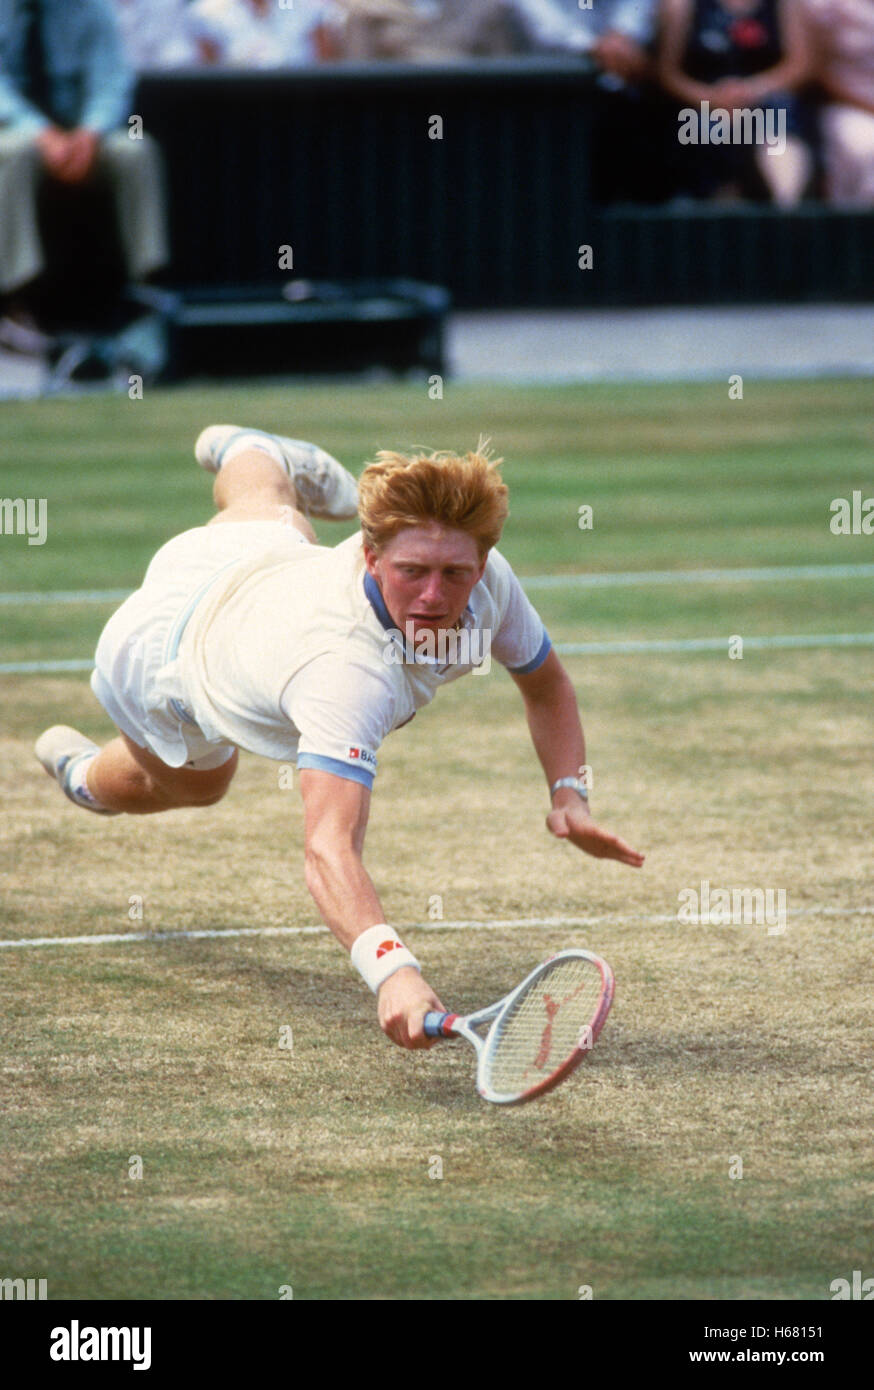 Boris Becker lunges for volley on Centre Court on his way to winning the 1985 Wimbledon Championships. - Stock Image